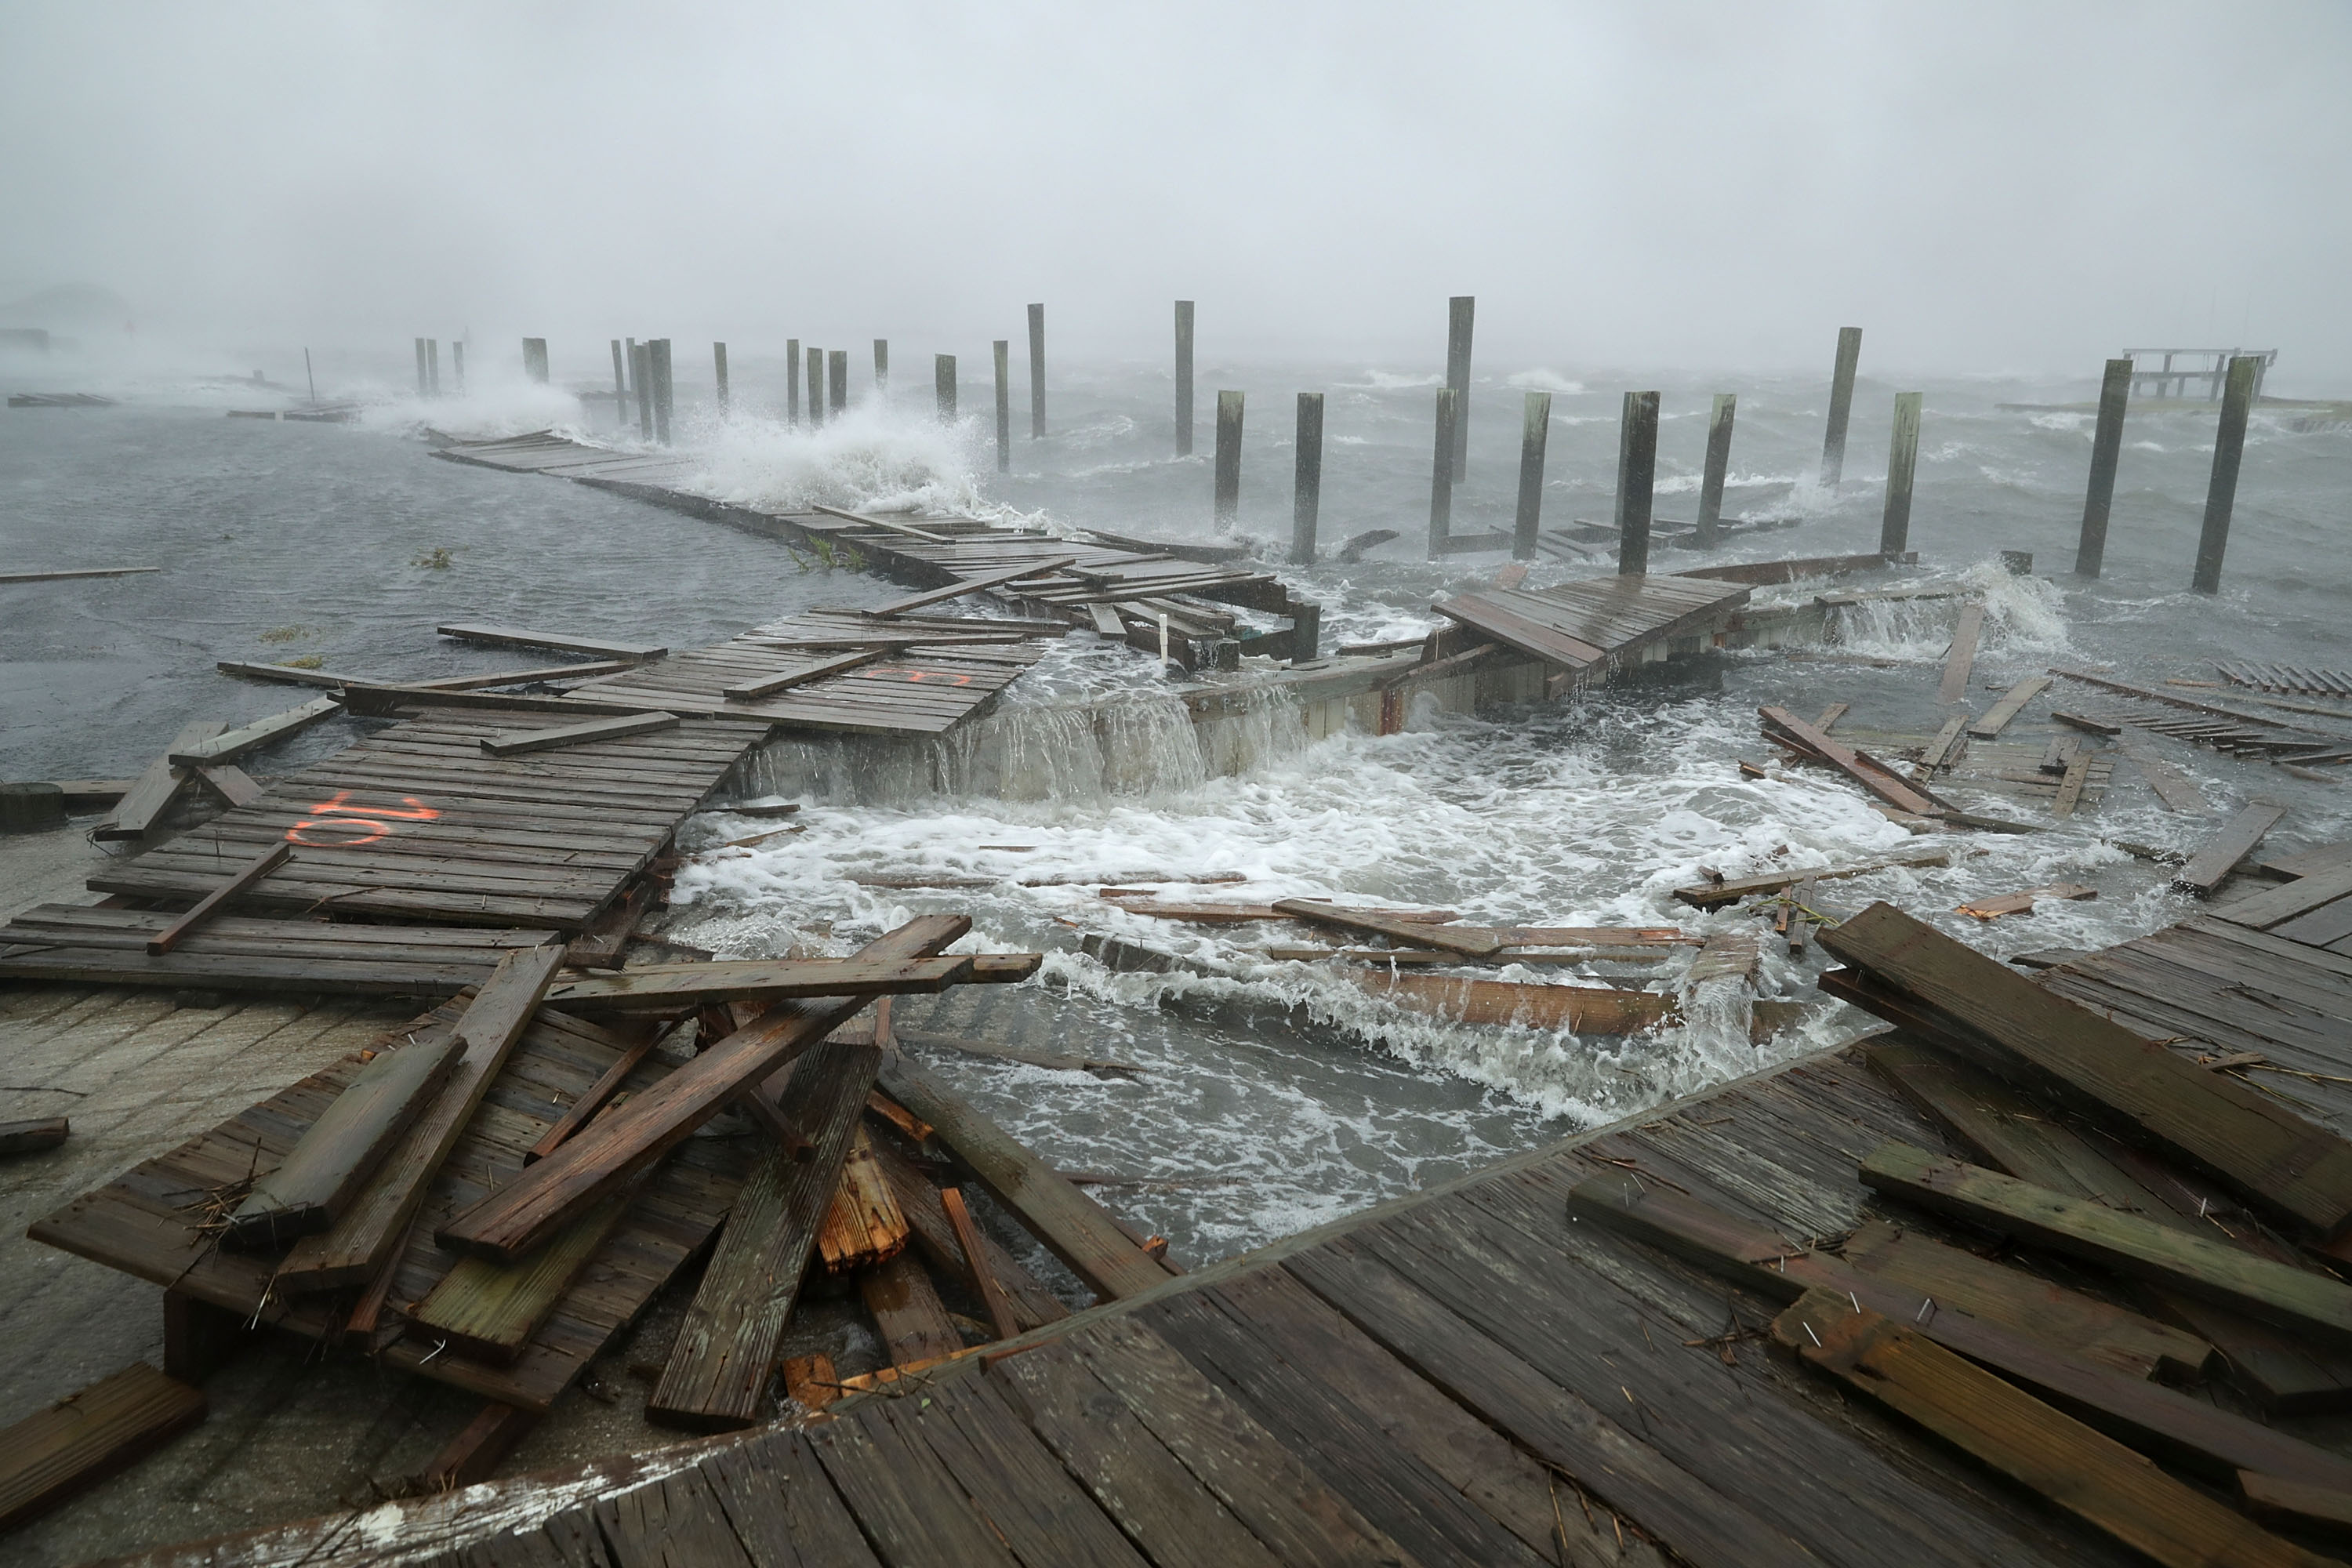 Portions of a boat dock and boardwalk are destroyed by powerful wind and waves as Hurricane Florence arrives September 13, 2018 in Atlantic Beach, United States. Coastal cities in North Carolina, South Carolina and Virginia are under evacuation orders as the Category 2 hurricane approaches the United States.